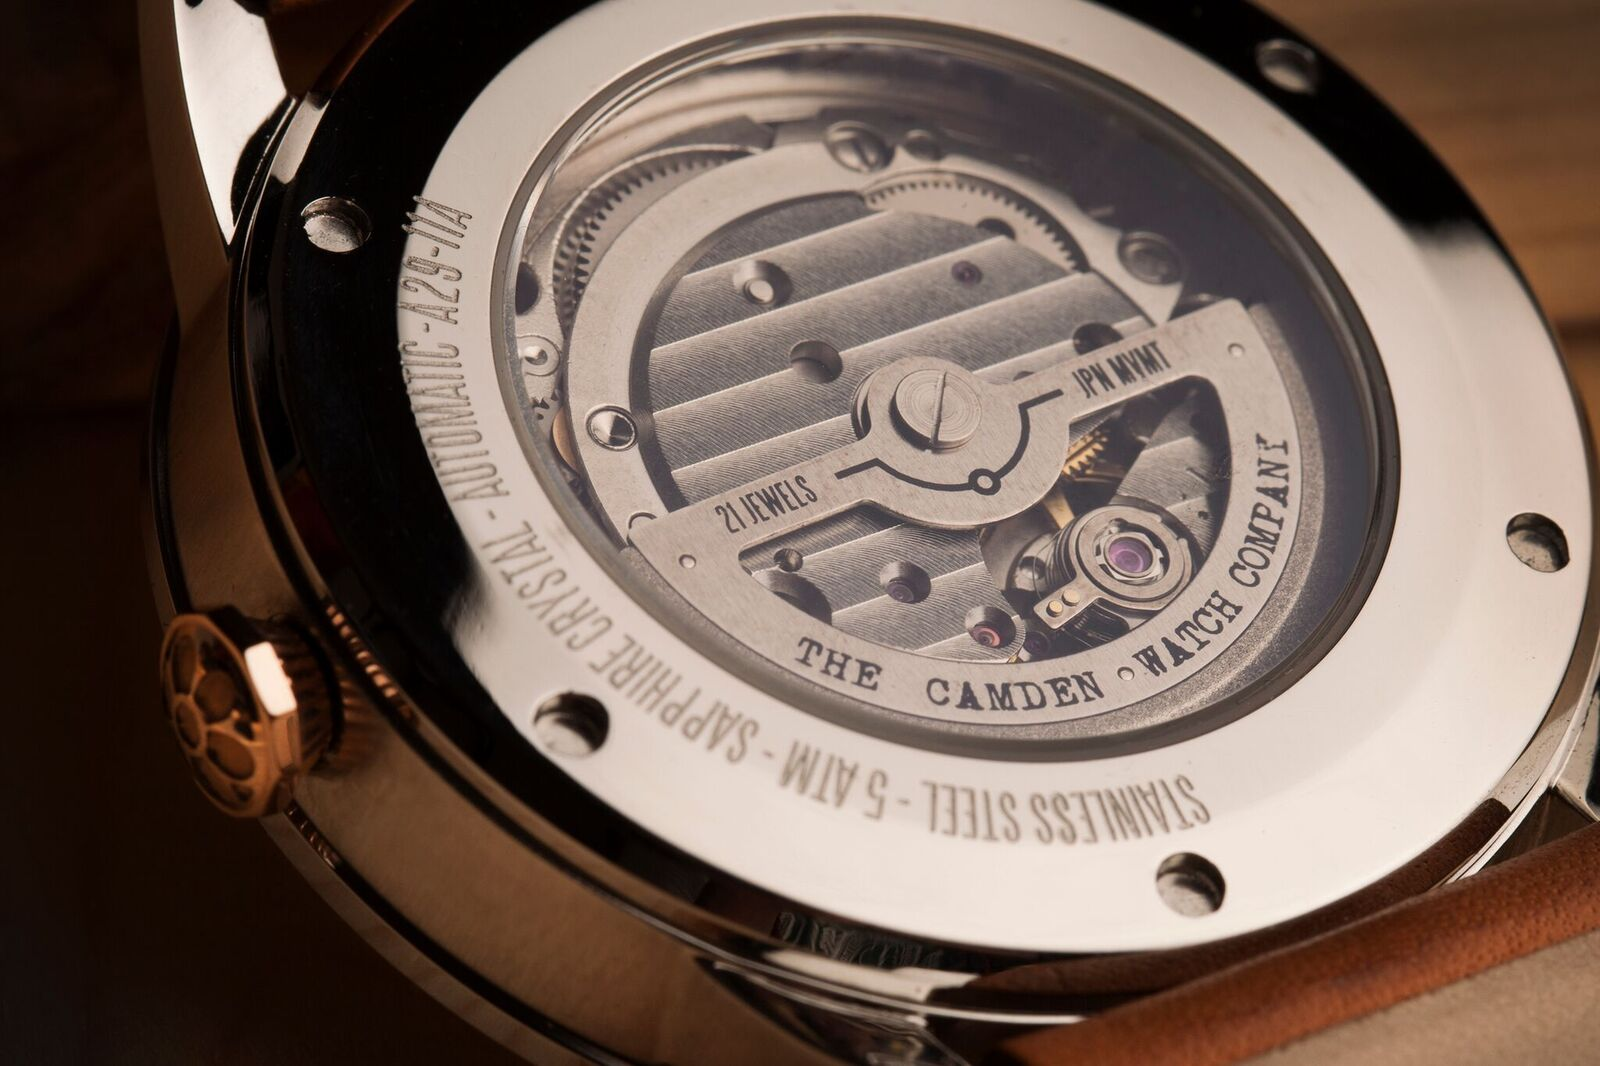 6d854331f ... a vintage style aesthetic appeal, this new Kickstarter campaign from Camden  Watch Company is going to more than fit the bill. The No.29 Automatic Watch  ...